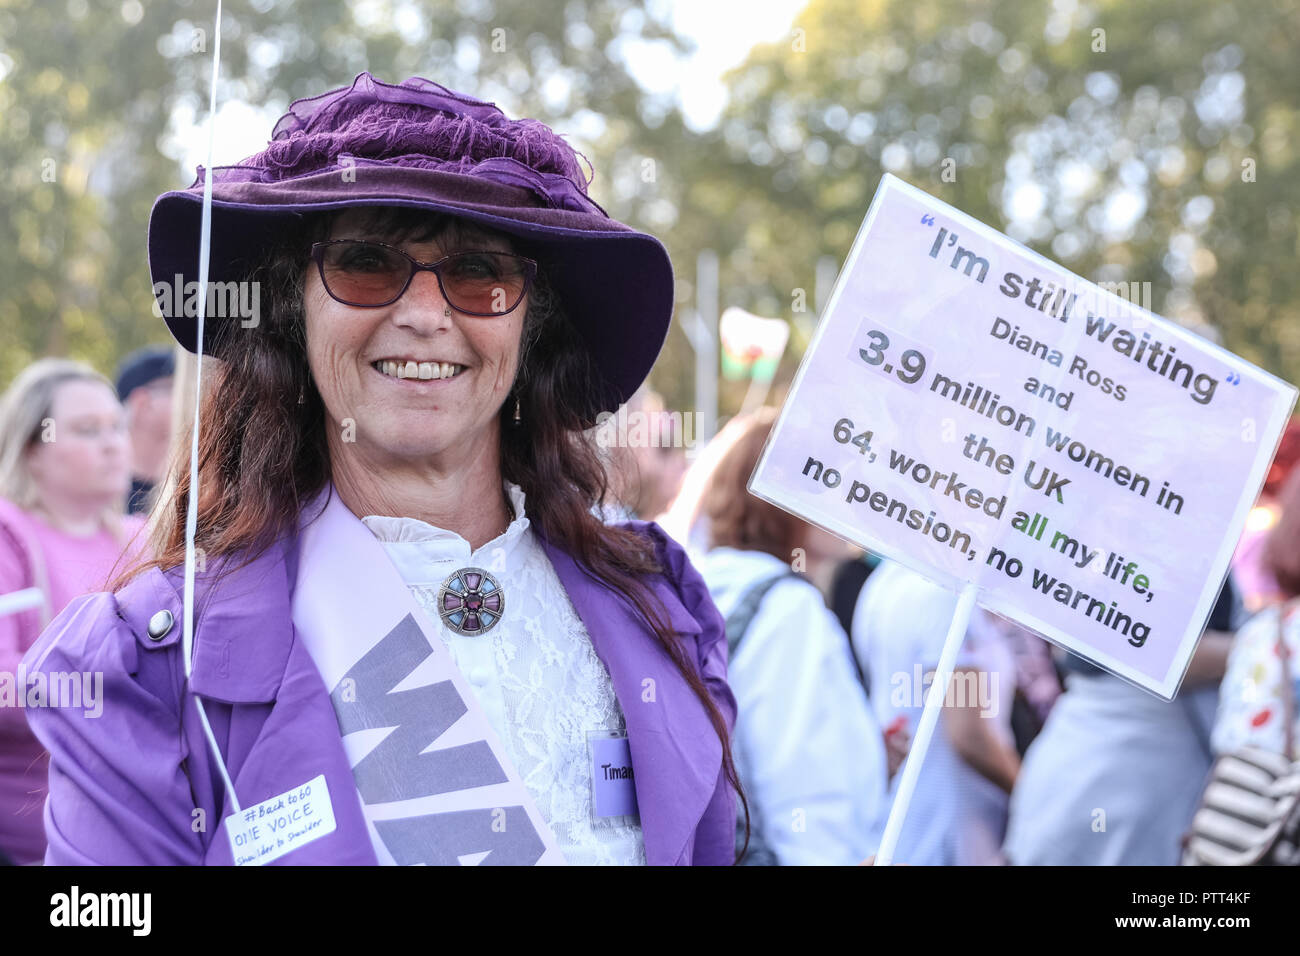 Westminster, London, 10th Oct 2018. A campaigner in suffragette costume shouts for pension equality. Women's pension groups, including the WASPI Campaign, have organised a march from Hyde Park to Parliament Square where several thousand women demonstrate for pension equality in British state pensions. Credit: Imageplotter News and Sports/Alamy Live News - Stock Image